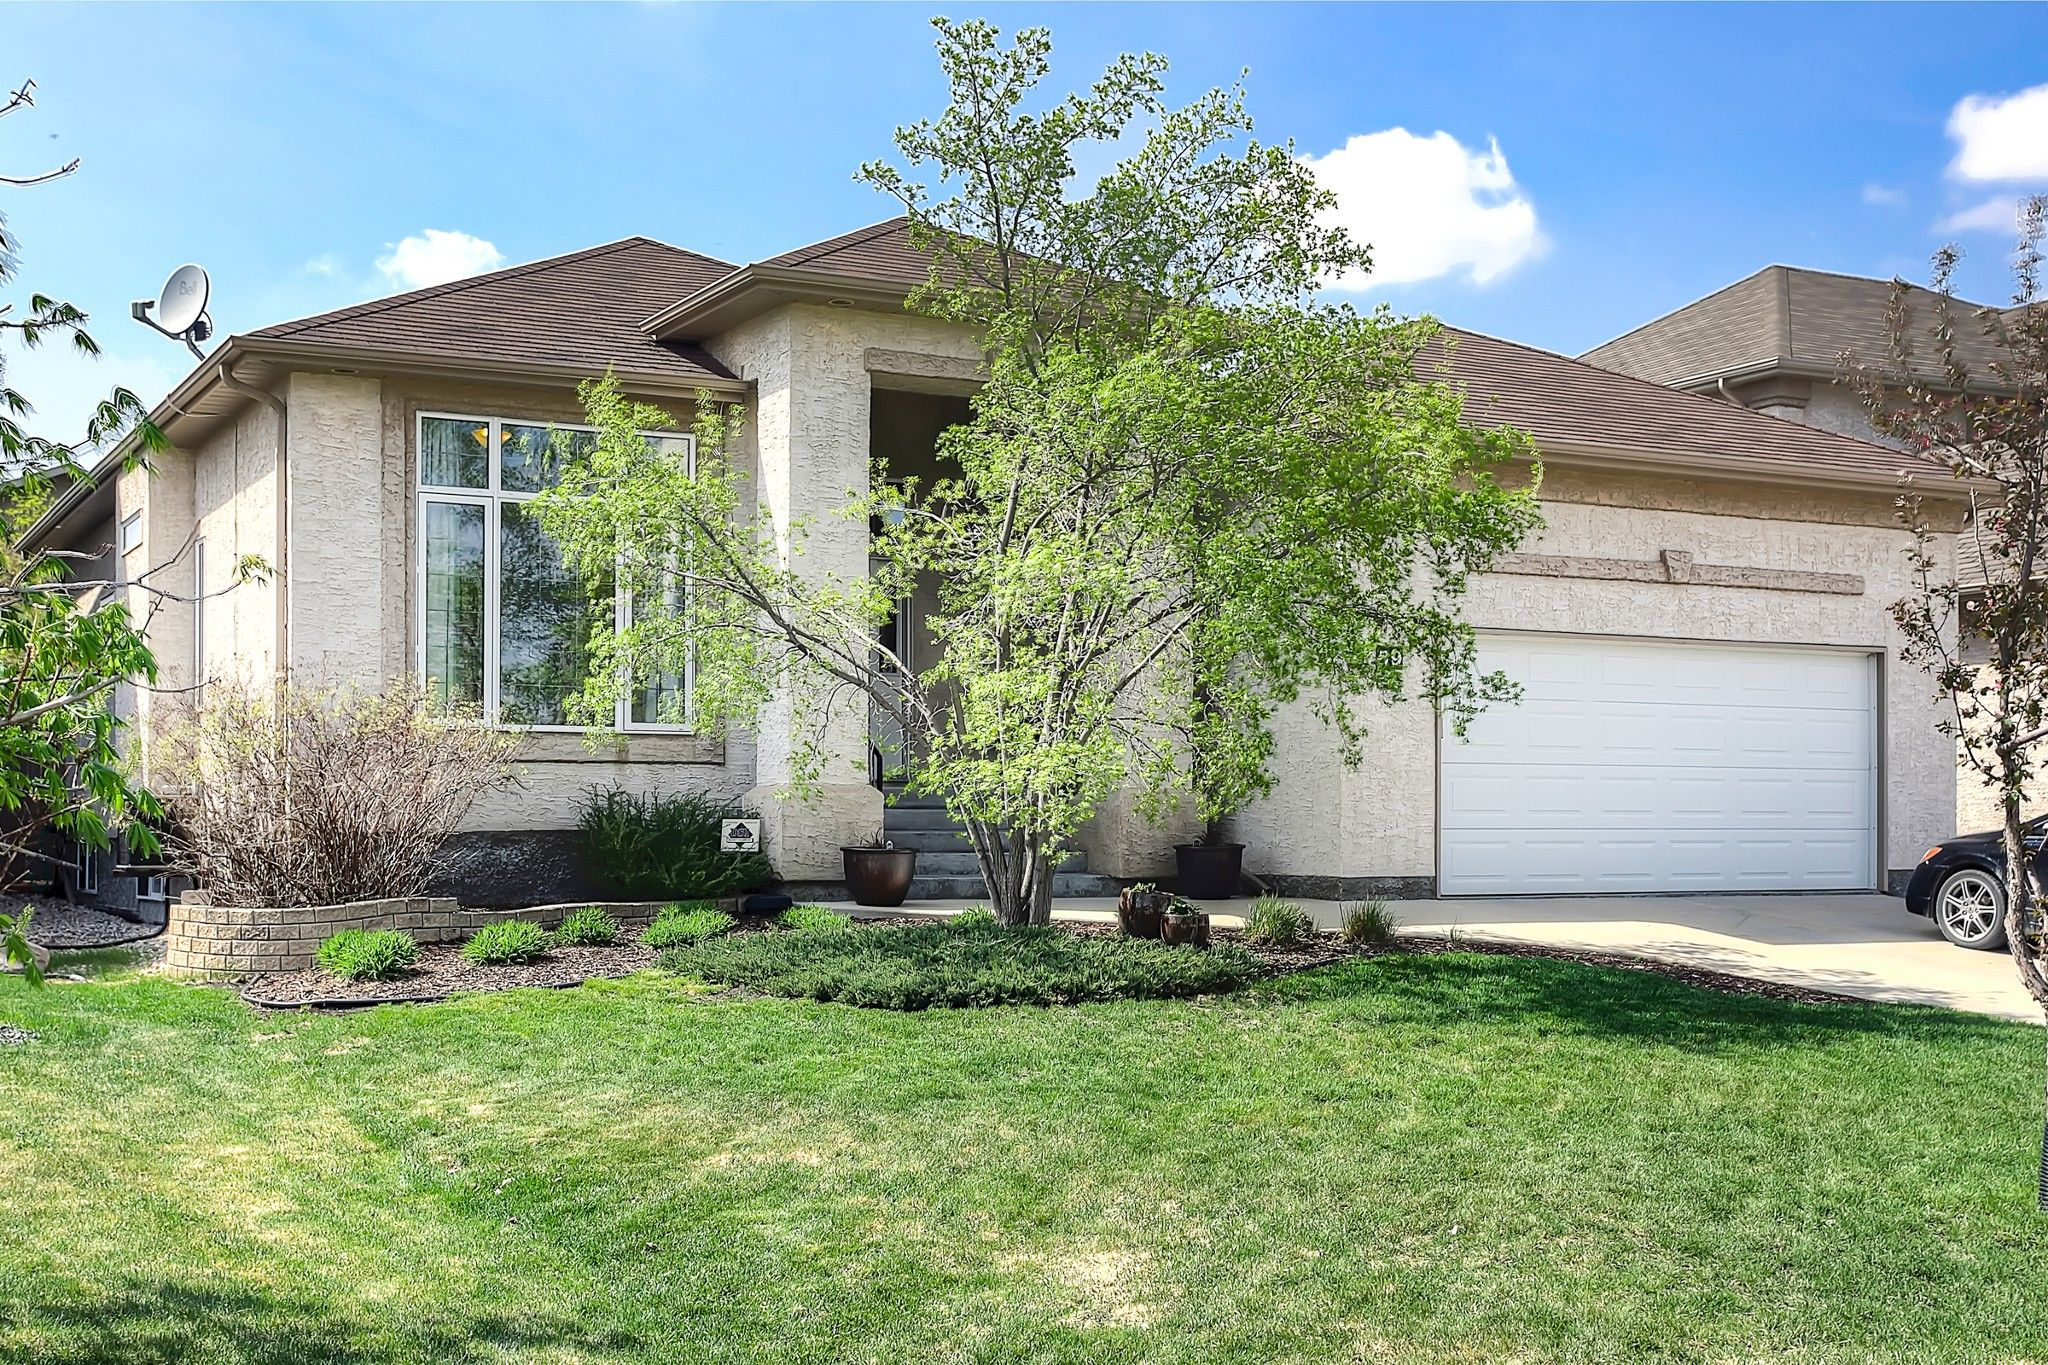 Main Photo: 59 Northport Bay in Winnipeg: Royalwood Single Family Detached for sale (2J)  : MLS®# 202011321